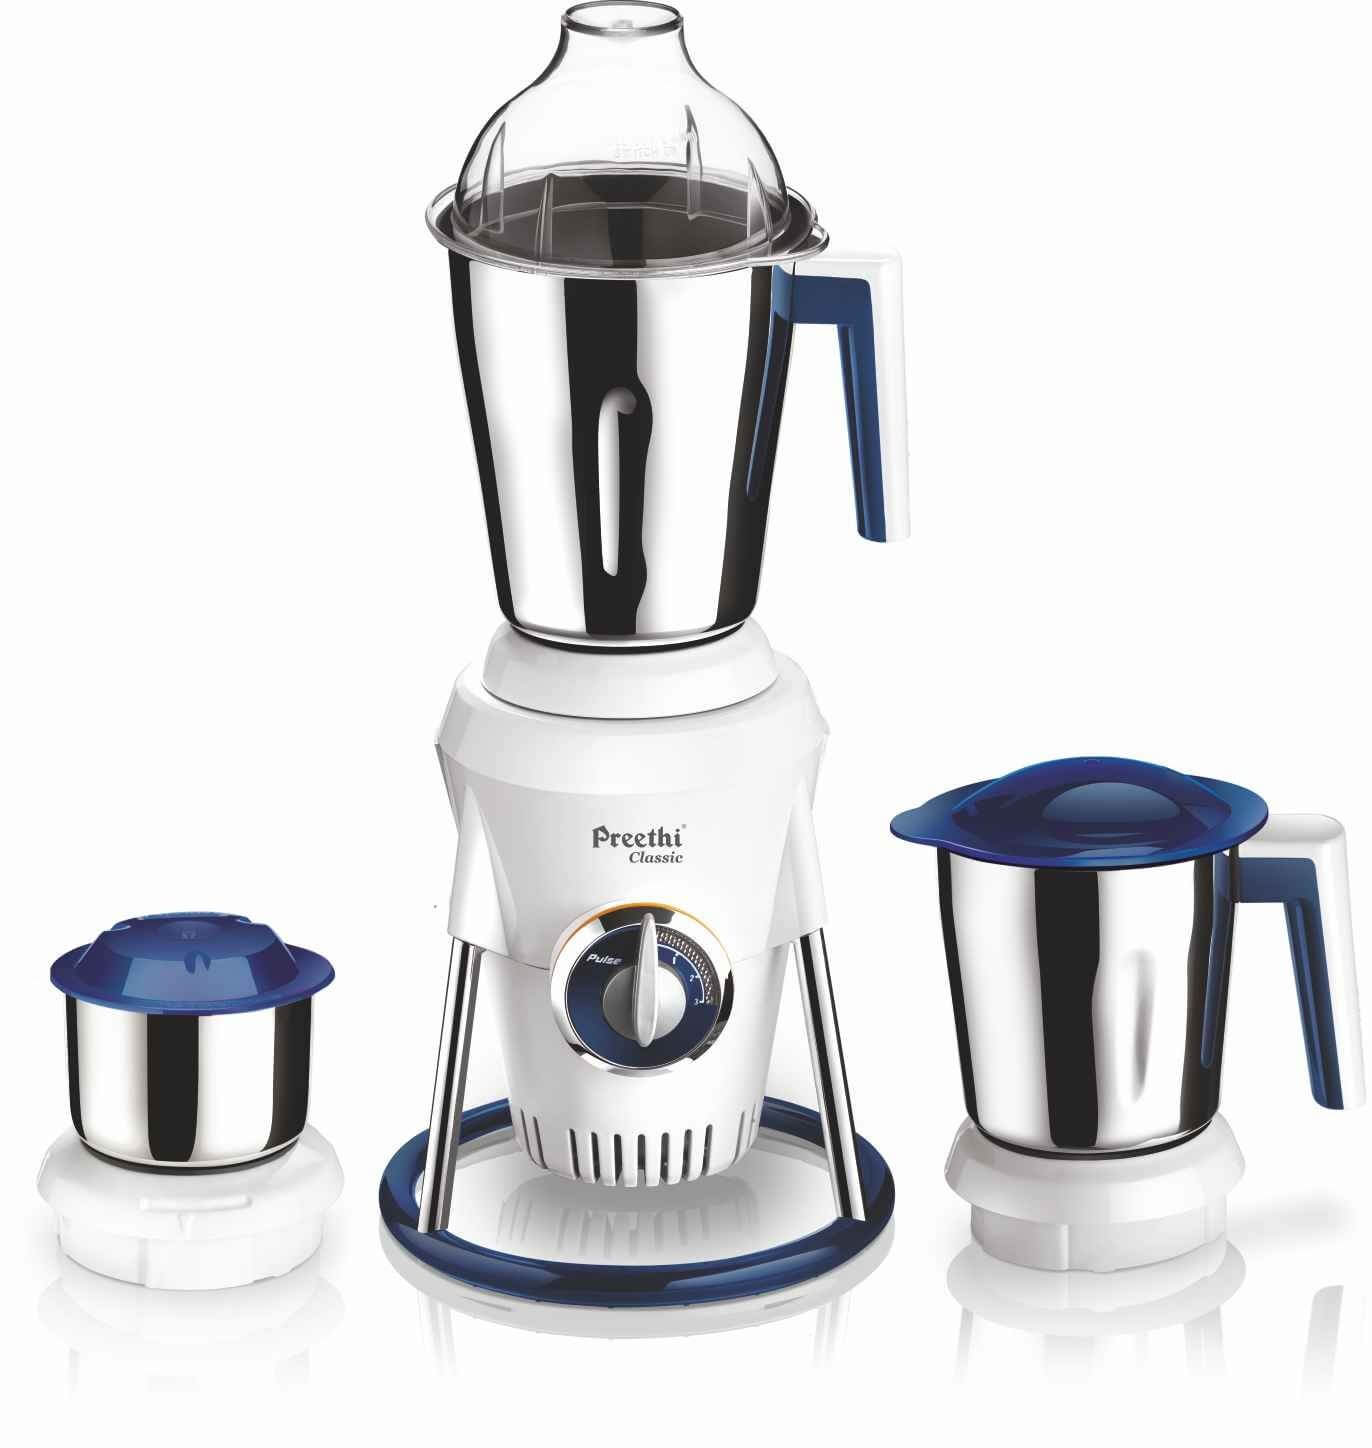 Preethi Classic MG 207 600 Watt Mixer Grinder with DC Motor